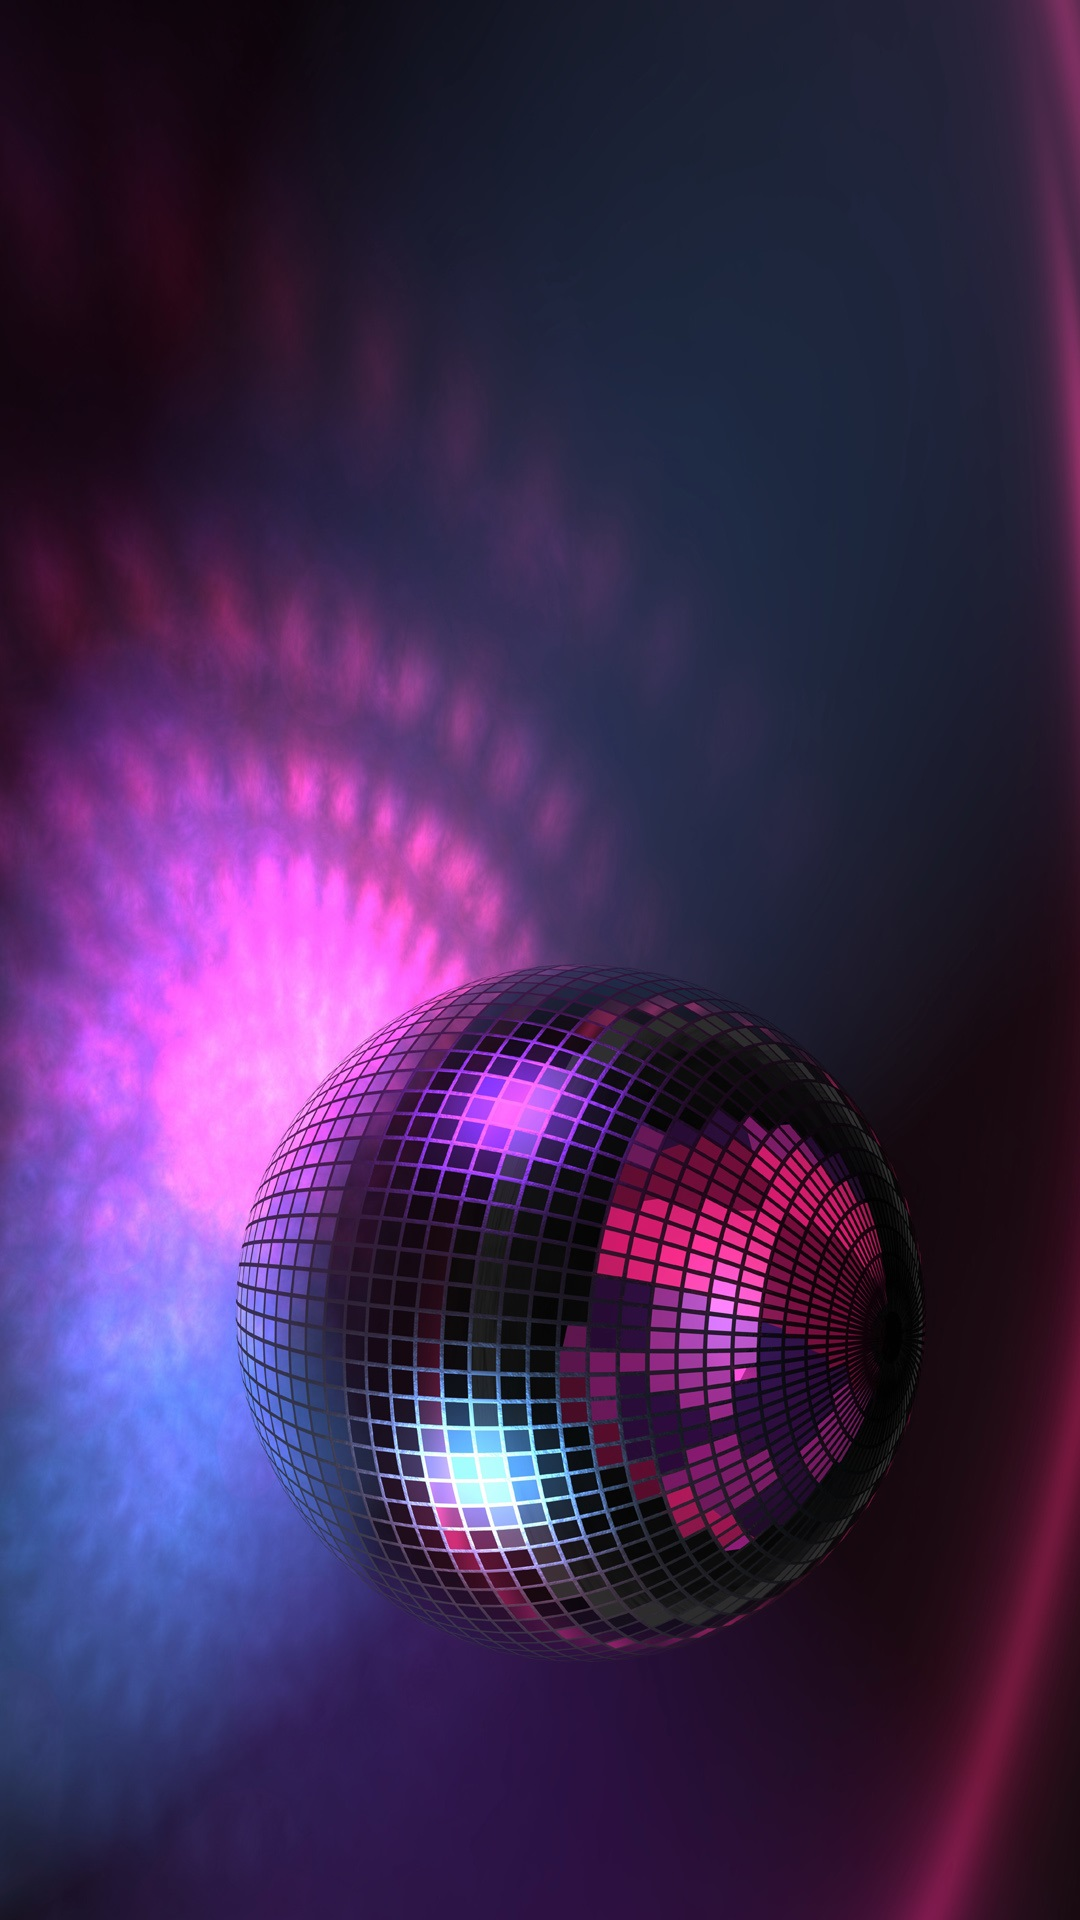 Simple Wallpaper Music Purple - Purple-ball-light-music-creative_1080x1920_iPhone_6_Plus_wallpaper  HD_806856.jpg